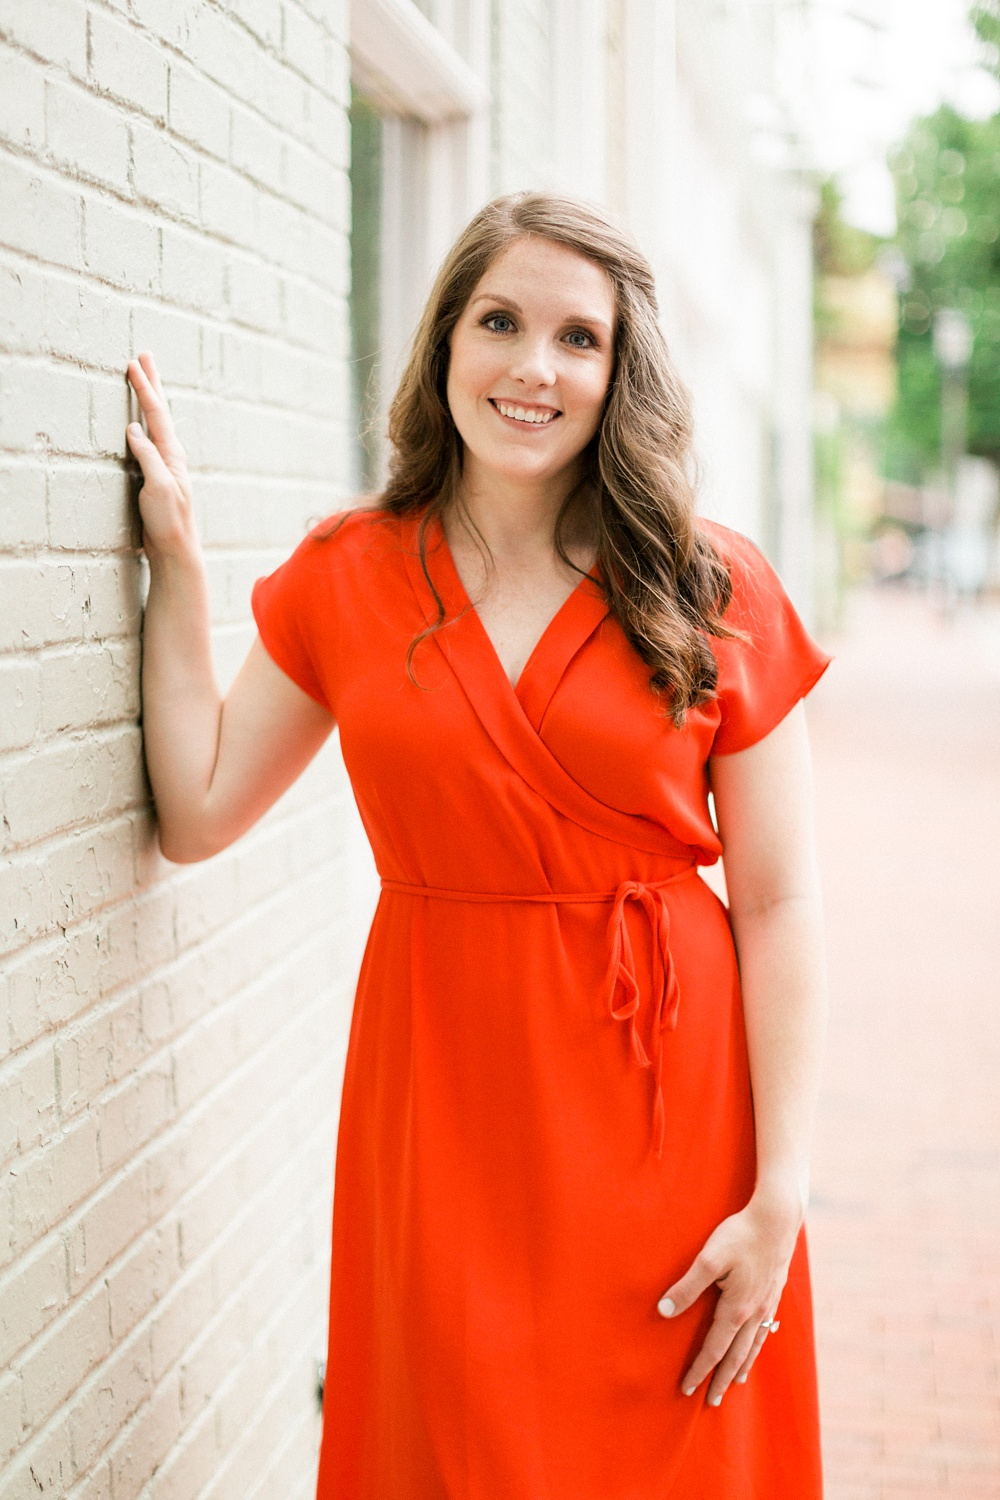 woman smiles and leans against a brick wall